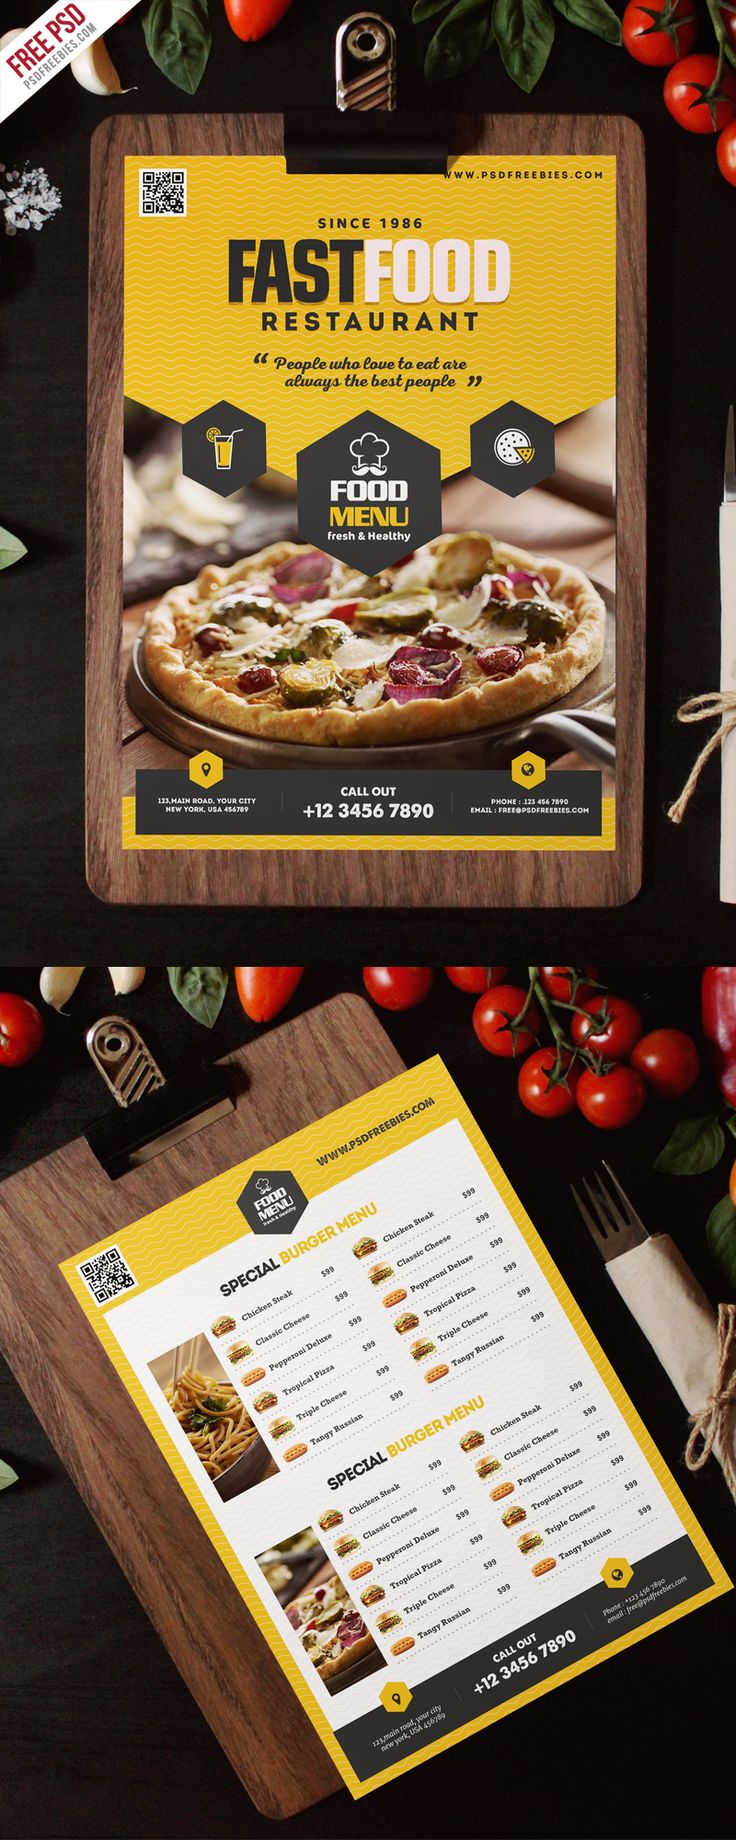 Download Free Fast Food Restaurant Menu Flyer Template PSD. This Restaurant Menu Flyer Template PSD is suitable for fast foods Restaurant, Bakery Cupcakes, Bread Shop, restaurants,Food and Catering Business, Cuisine, bar, Cafe, and many more. All main elements are customizable and easy to edit font, text, color, fully adobe photoshop format.